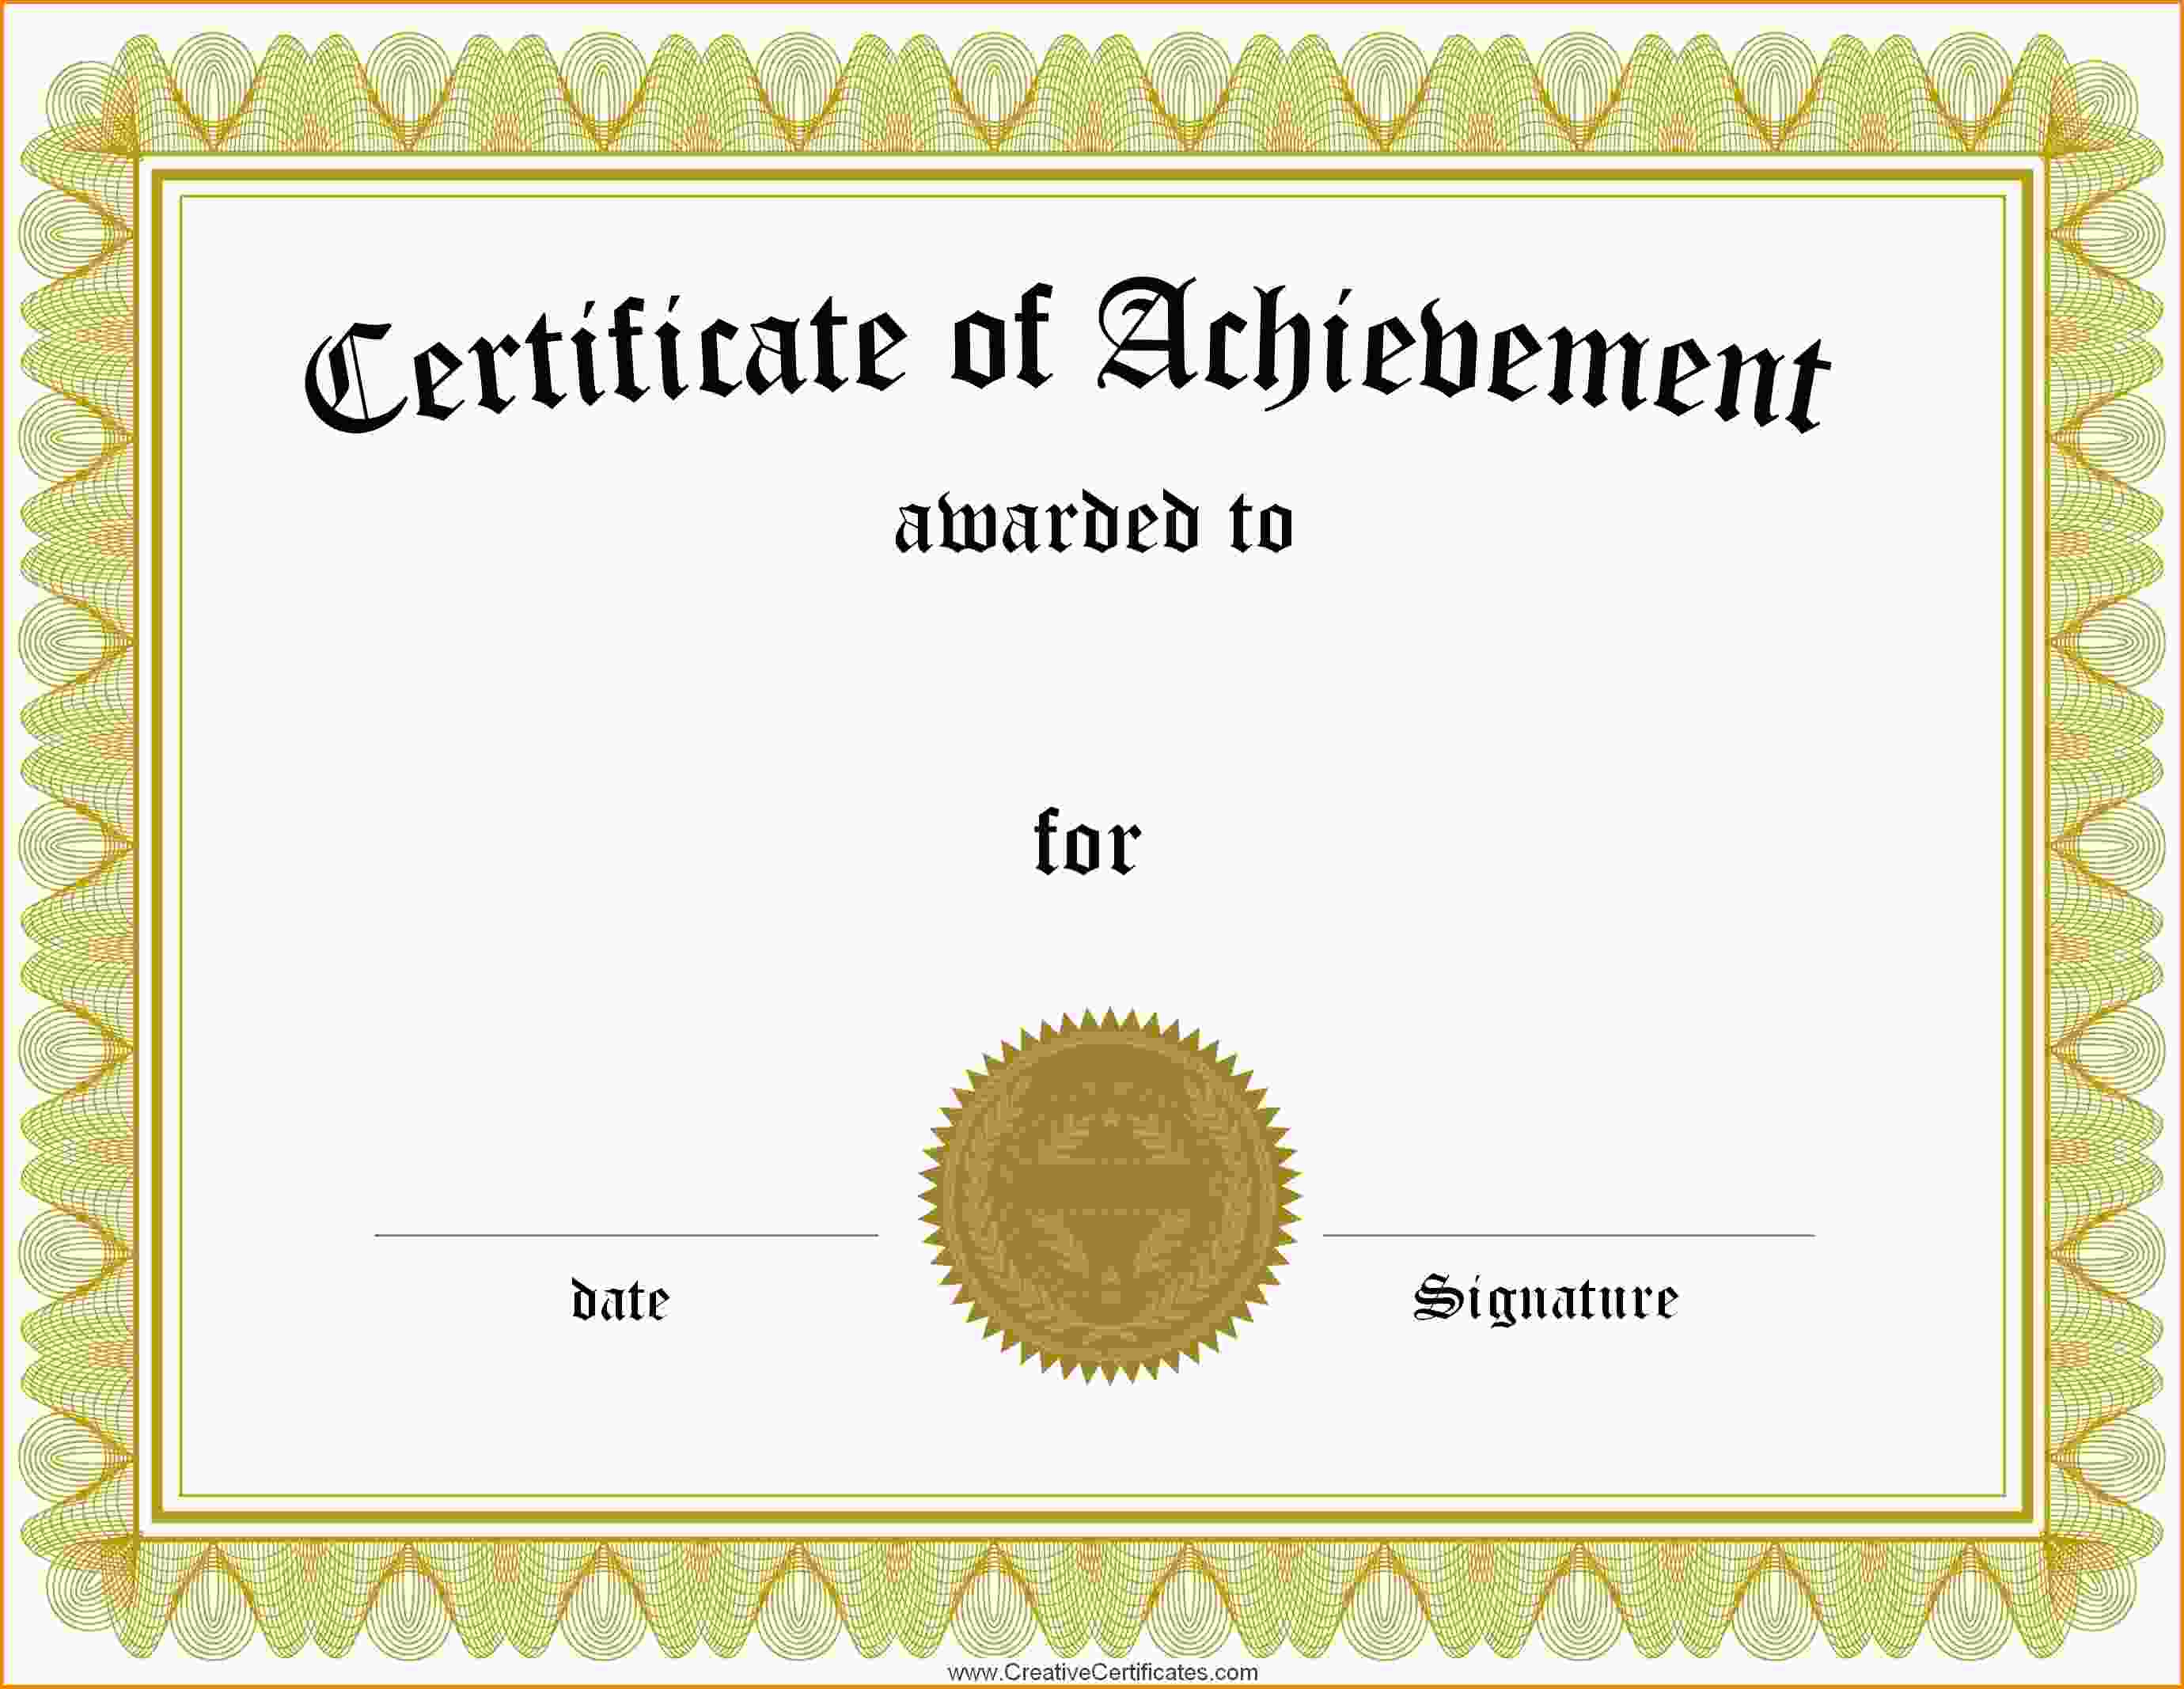 Png Certificates Award Transparent Certificates Award Images - Free Printable Award Certificates